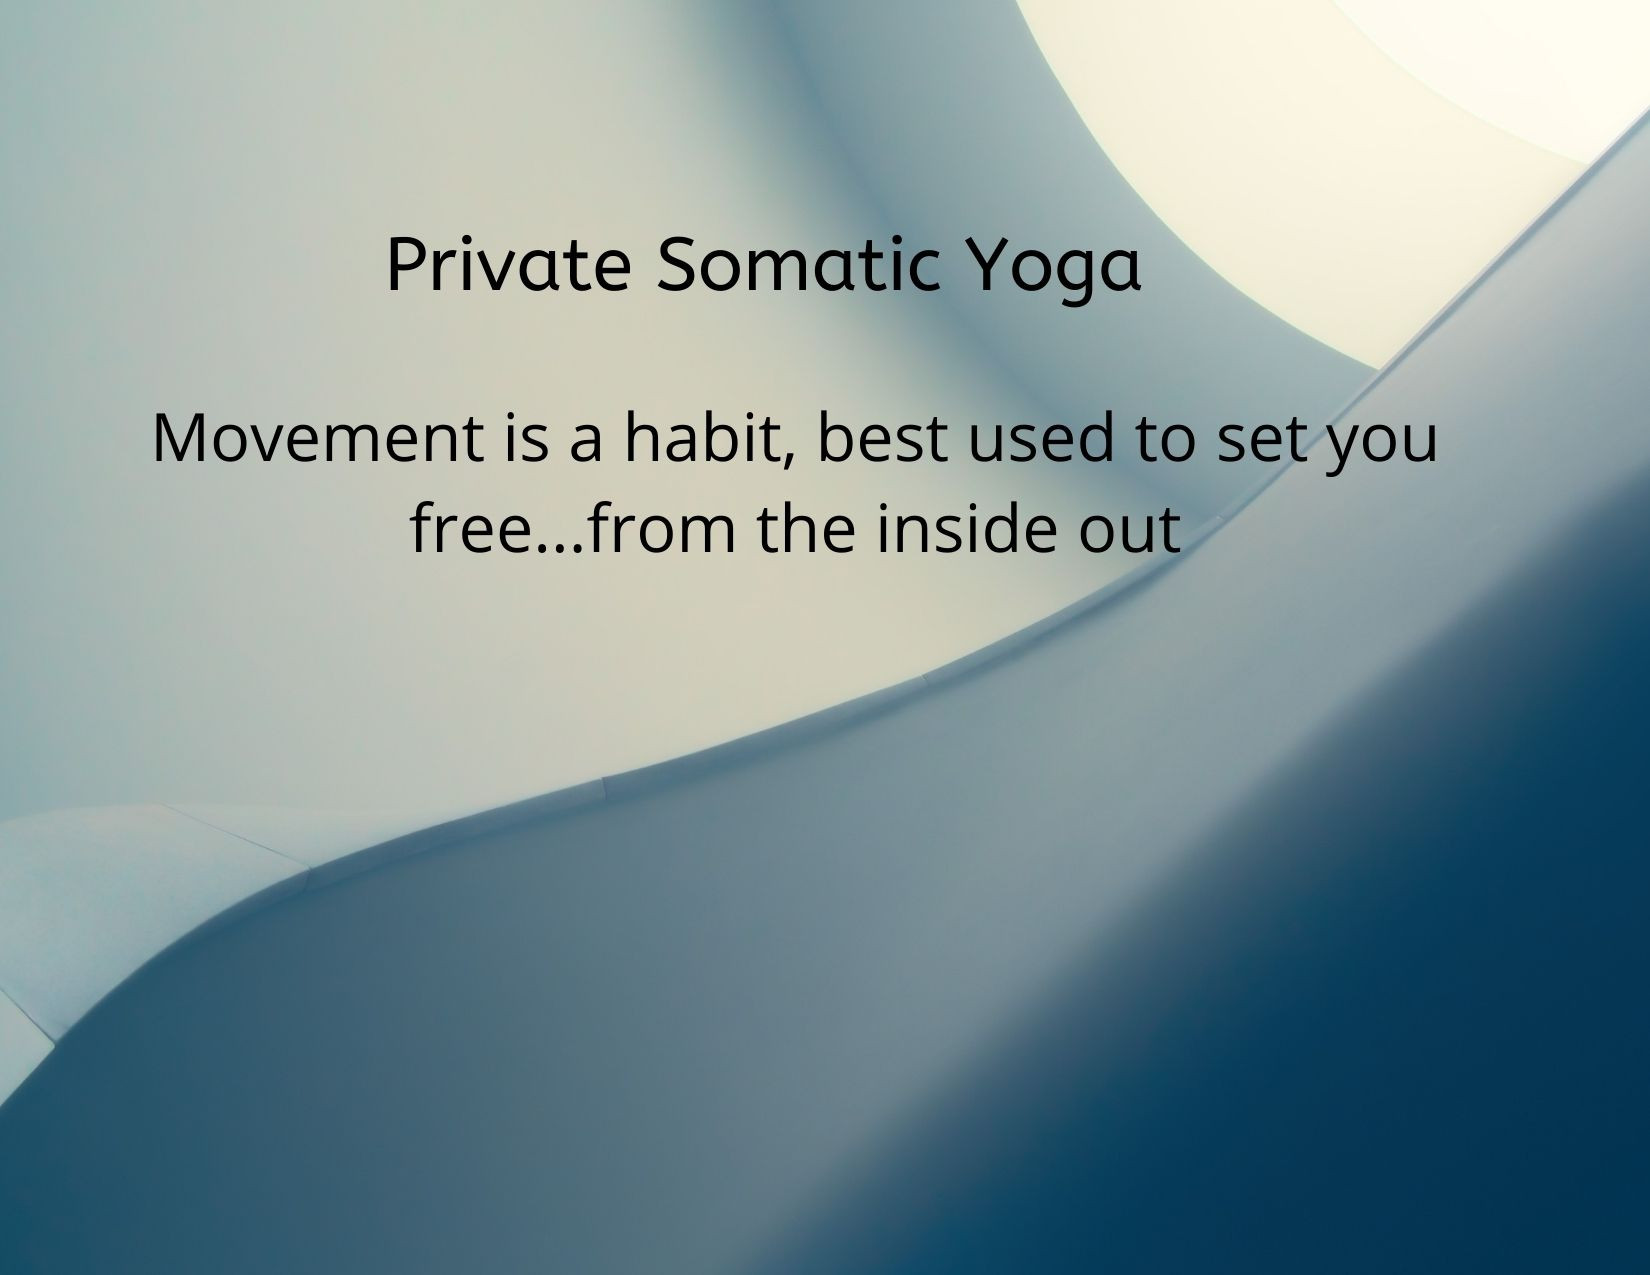 Private Somatic Yoga On-line